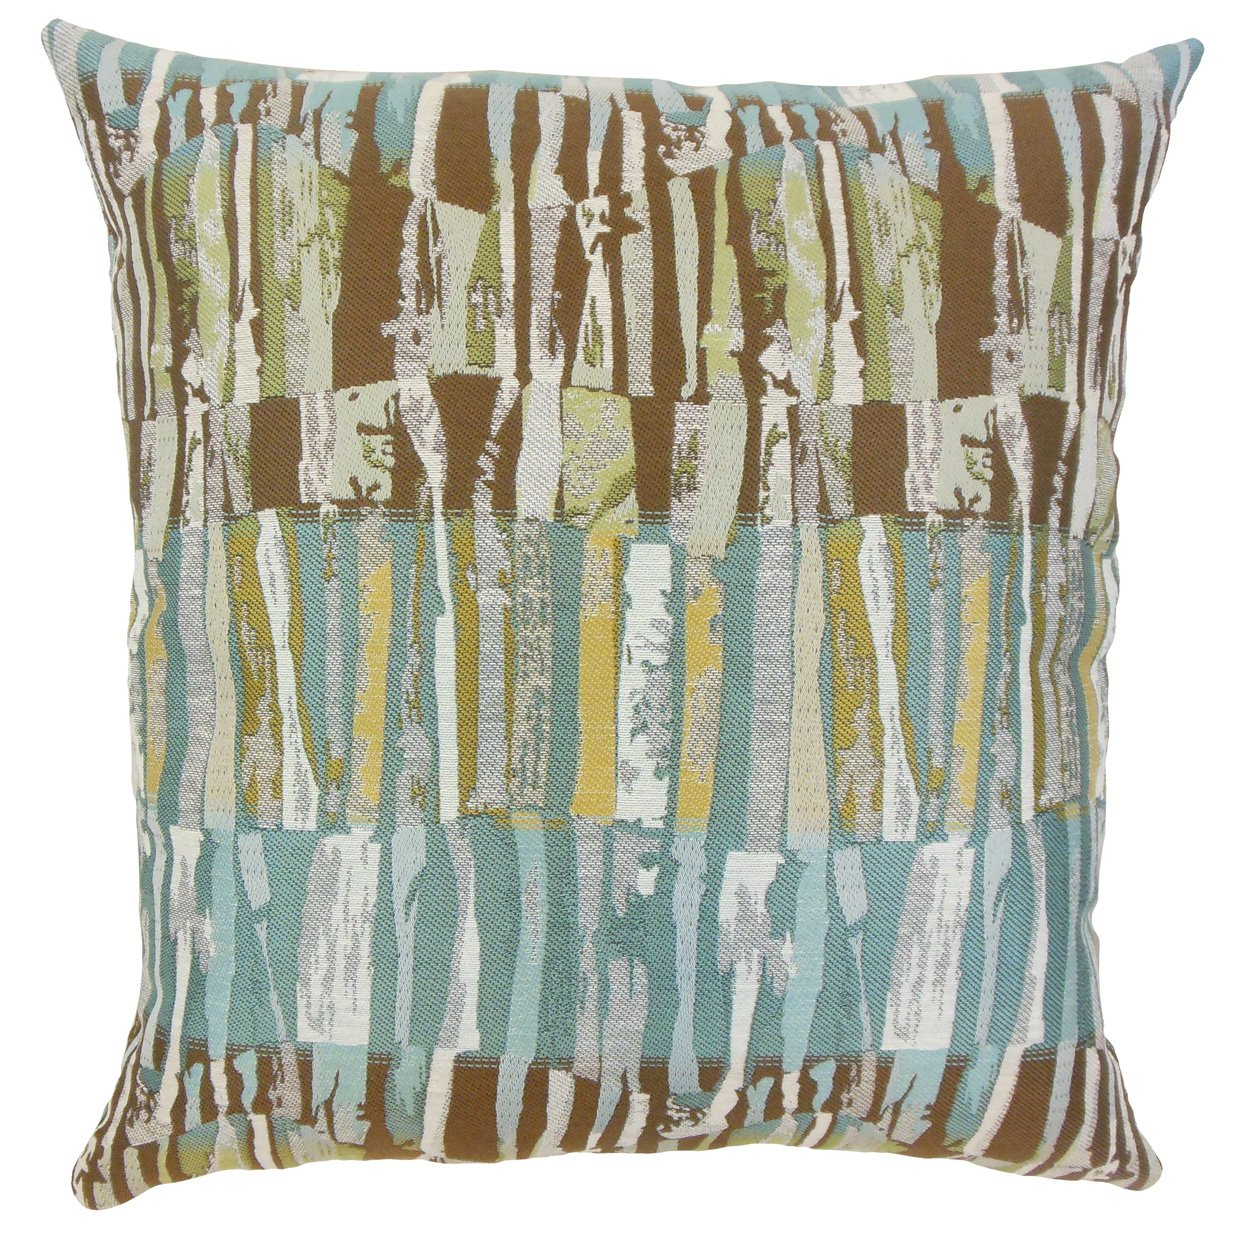 The Pillow Collection Prunella Stripes Bedding Sham Blue Queen//20 x 30